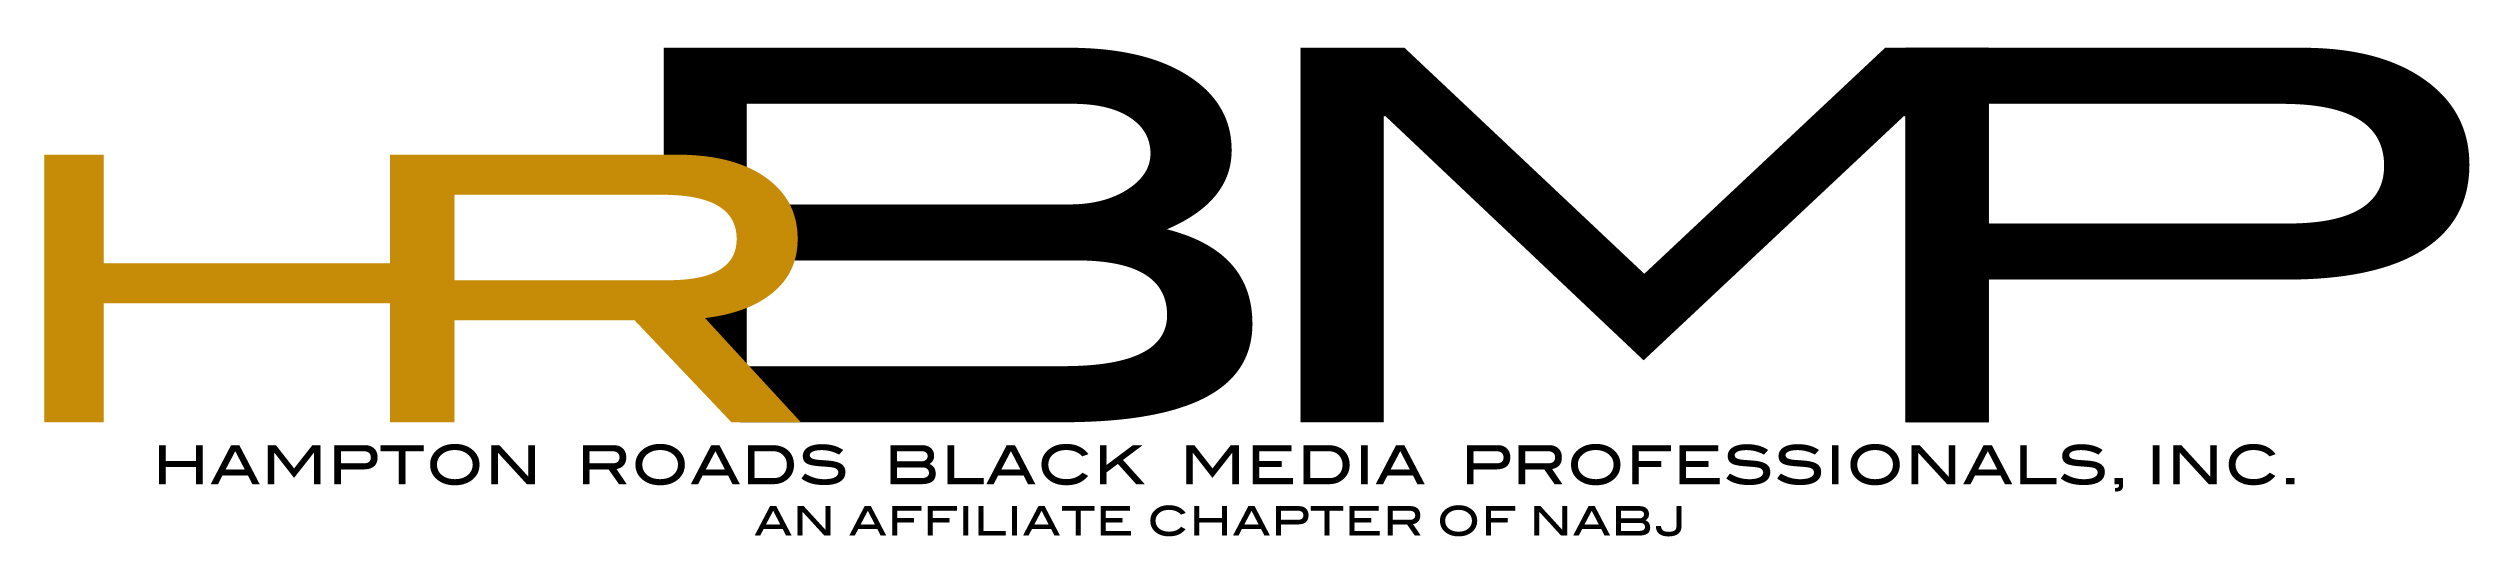 Hampton Roads Black Media Professionals